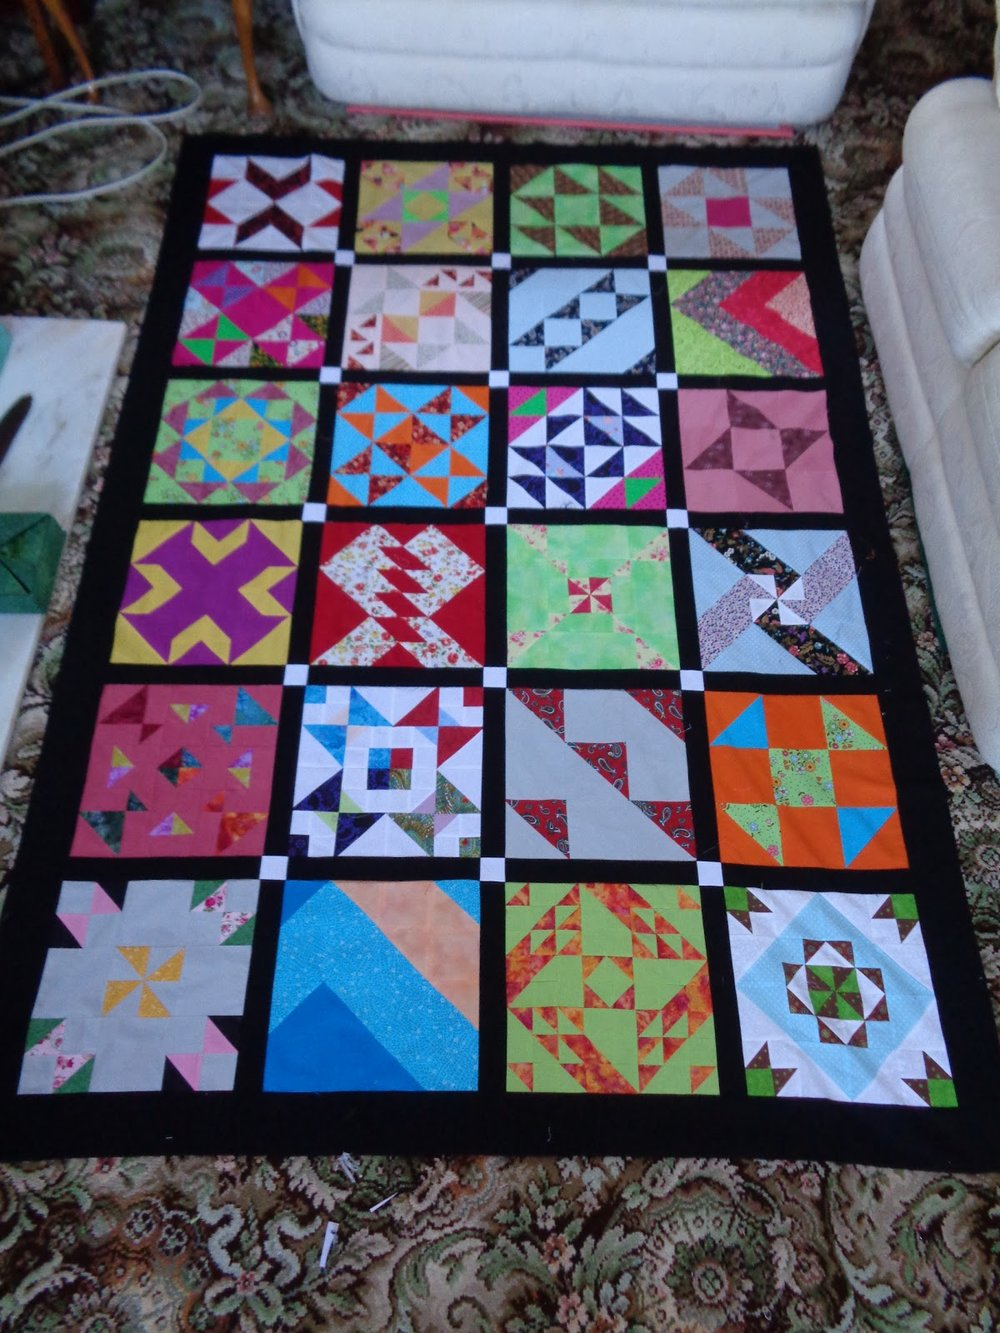 Margaret's Blossom Hearts quilt from Week 7